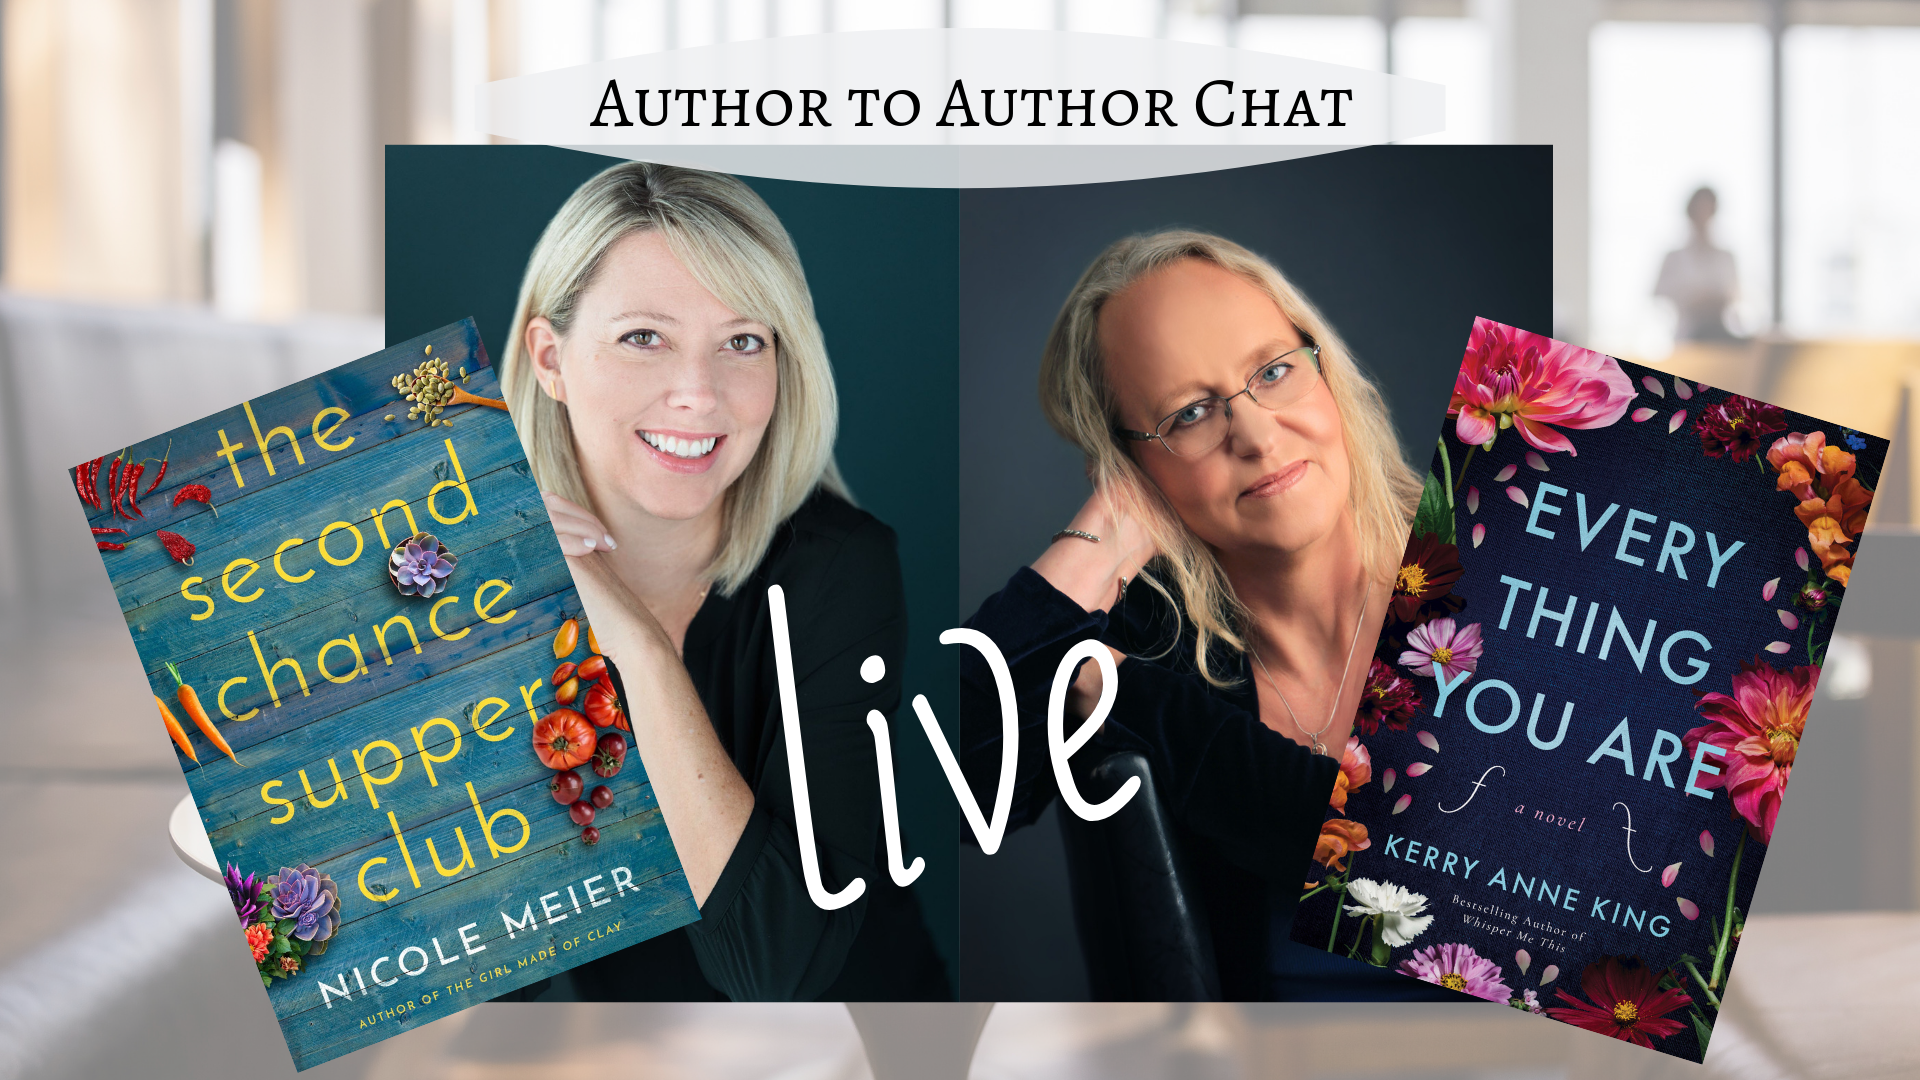 Join us for a fun conversation about writing and our new releases!